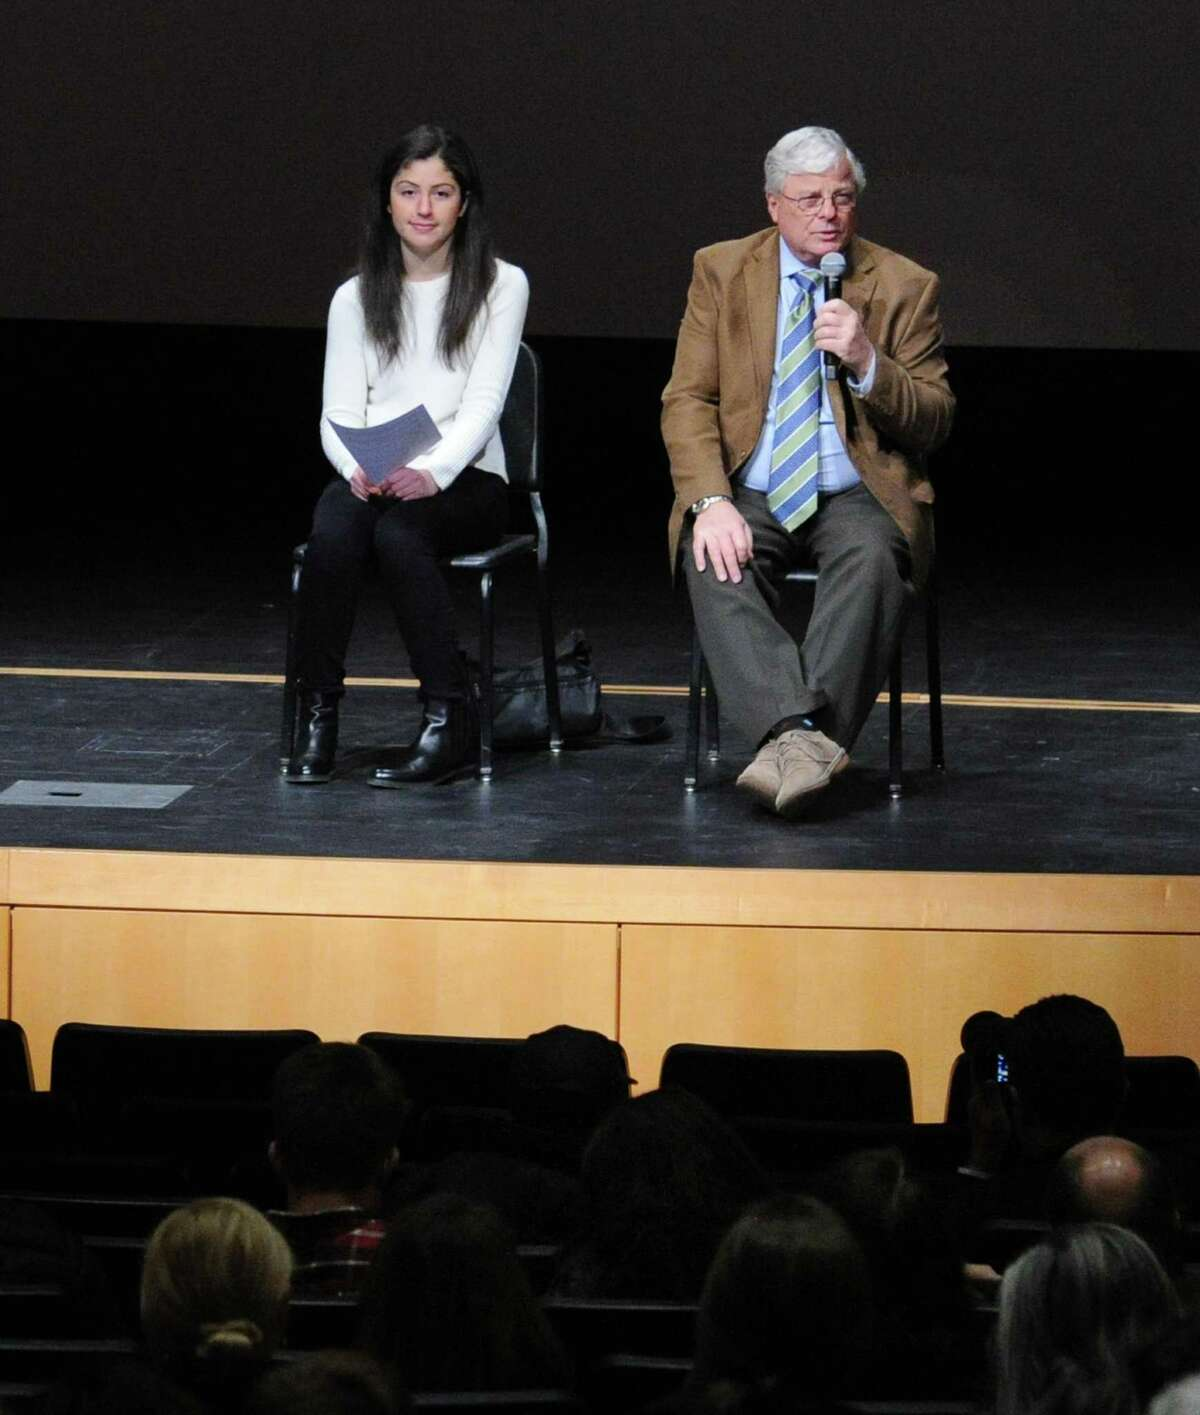 At left, Kathryn Pappas, a Greenwich High School junior, and Interim Superintendent of the Greenwich Public Schools, Sal Corda, were part of the panel during the Greenwich Alliance for Education sponsored screening and panel discussion of the documentary film